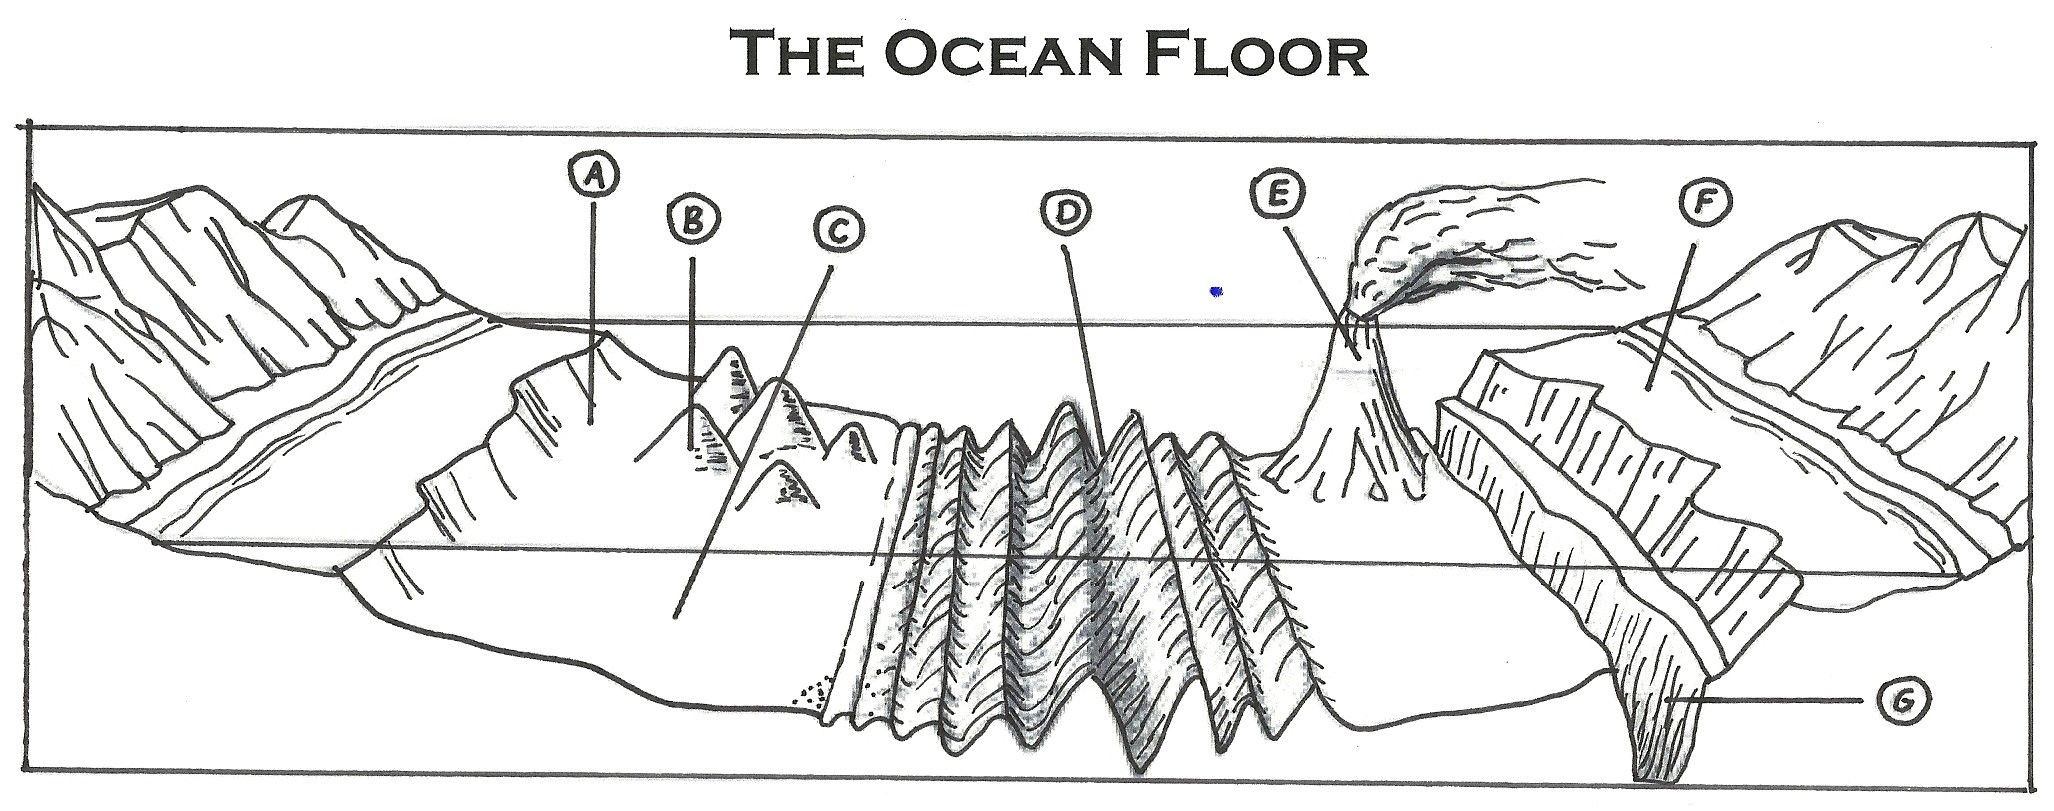 Ocean Floor Worksheets 5th Grade the Ocean Floor Worksheets In 2020